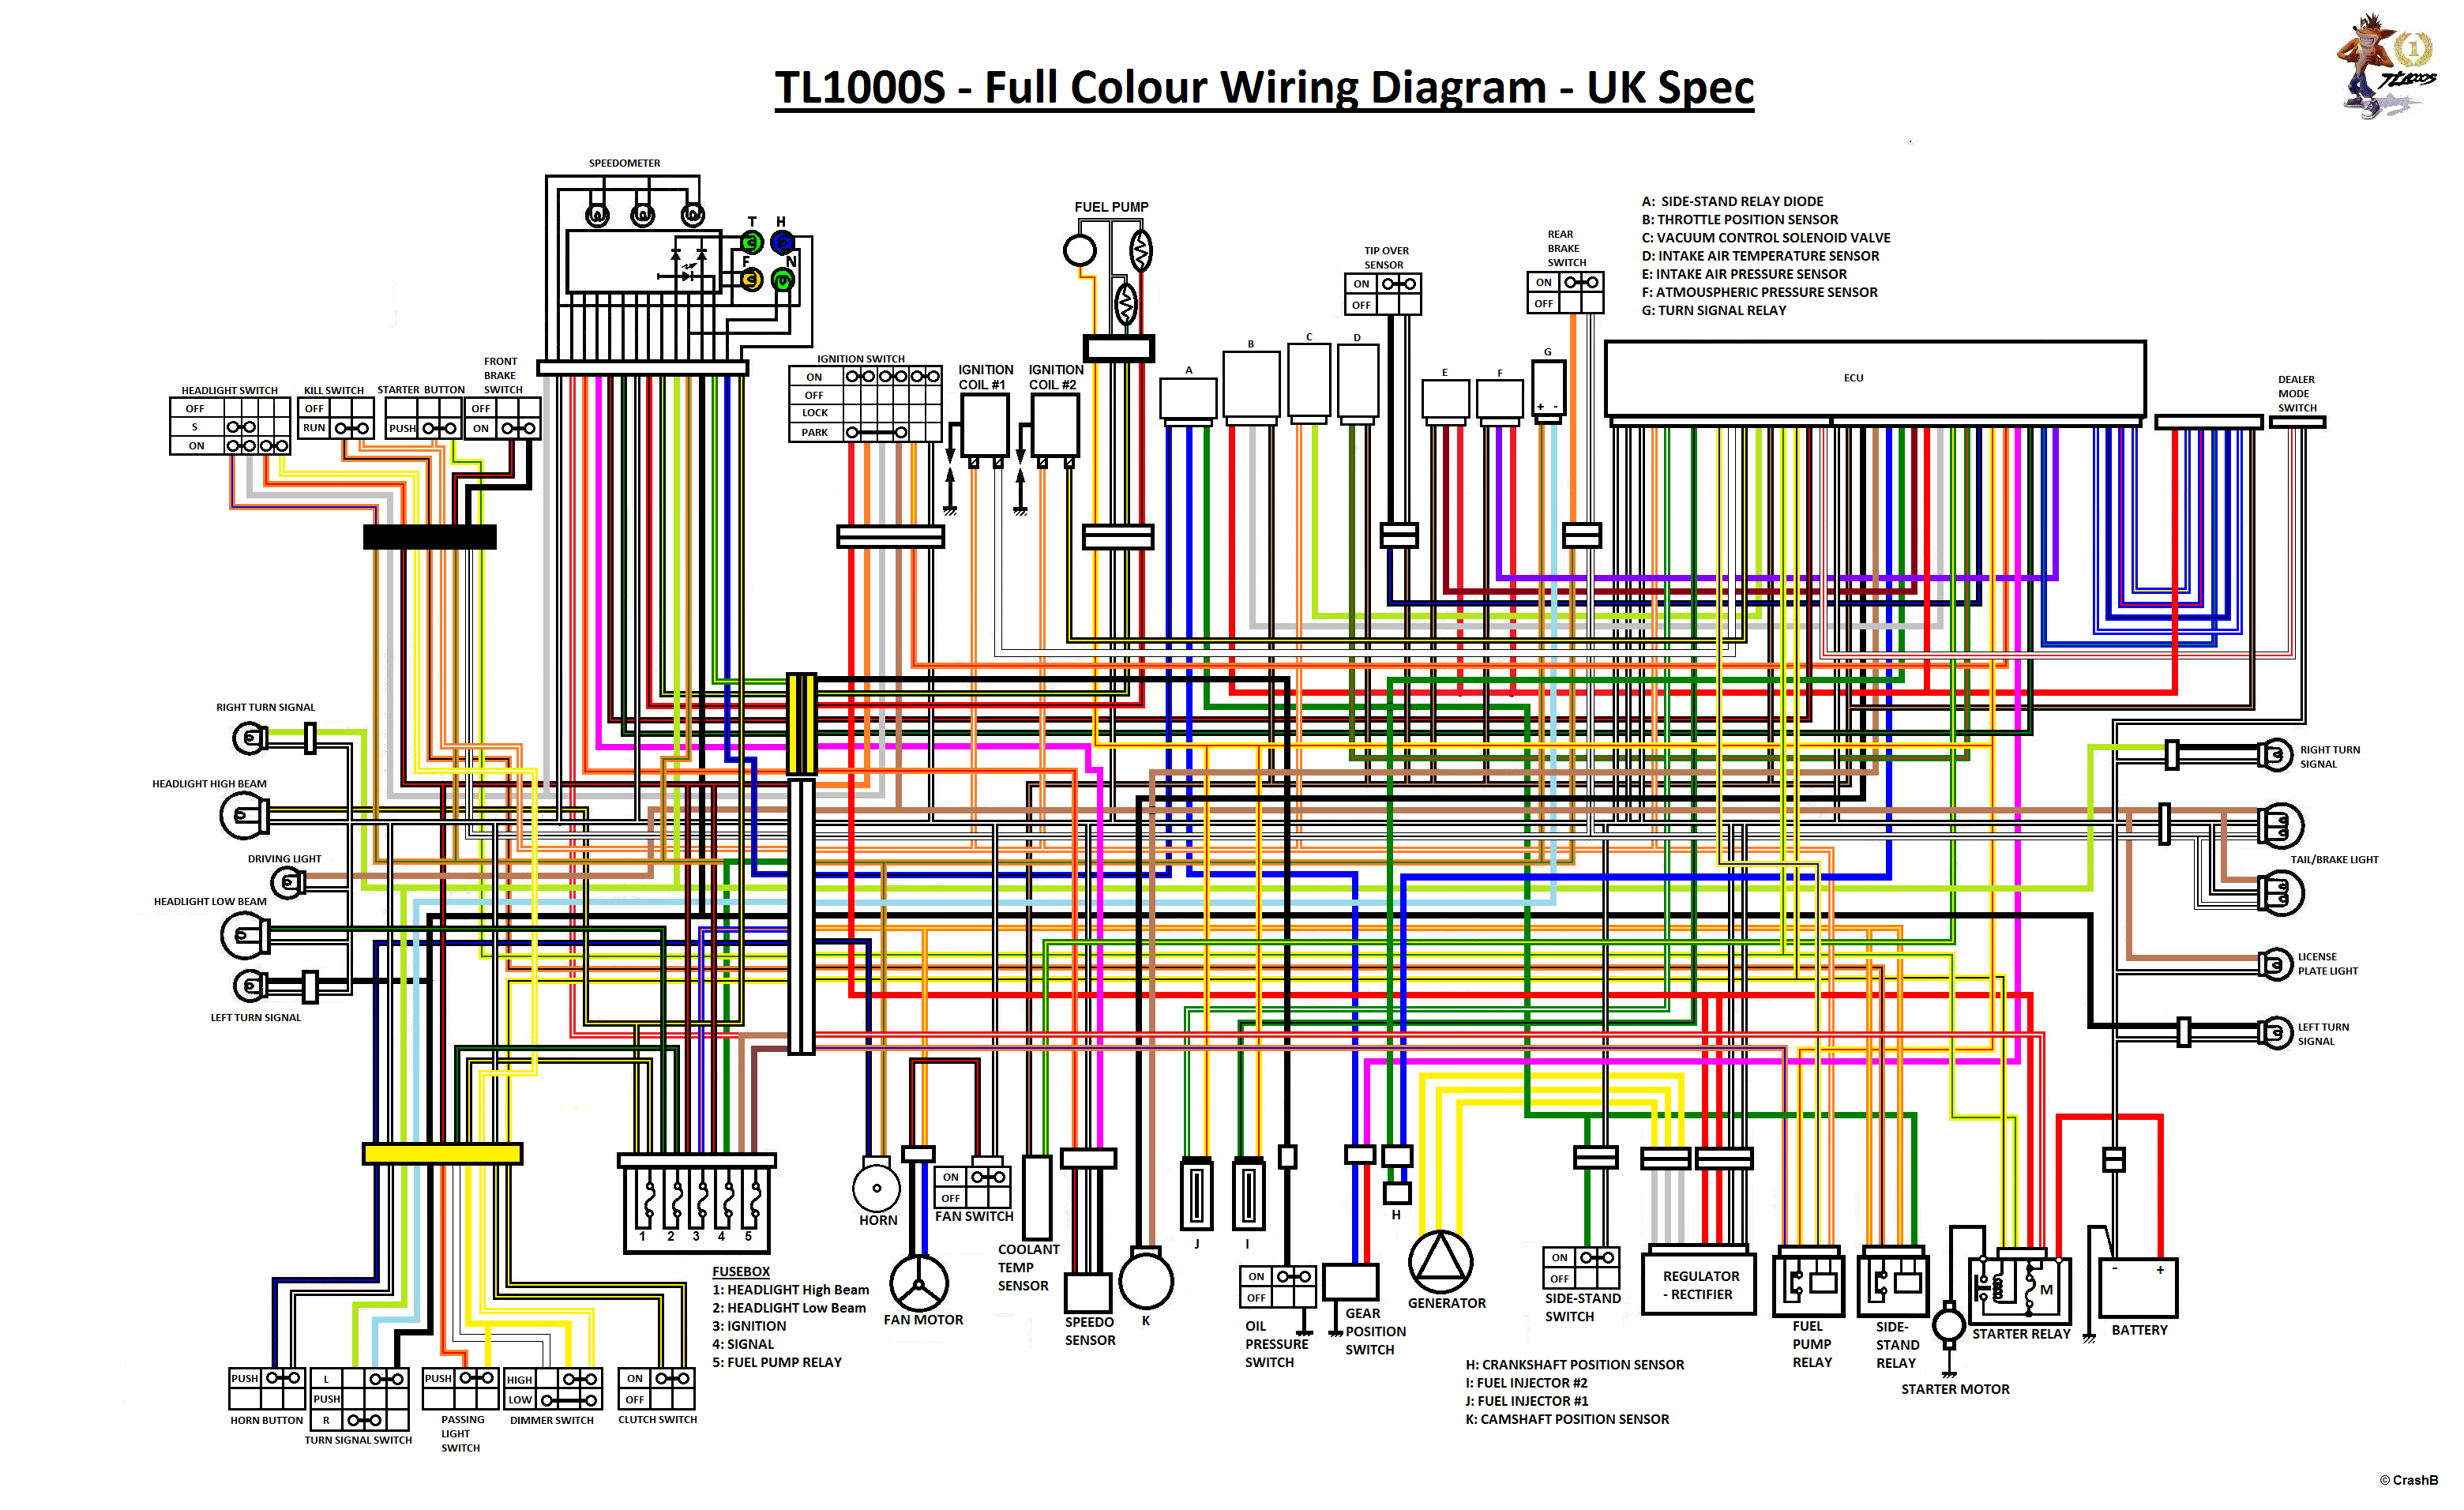 air pressure relay wiring diagram suzuki tl1000s wiring diagram wiring diagram data  suzuki tl1000s wiring diagram wiring